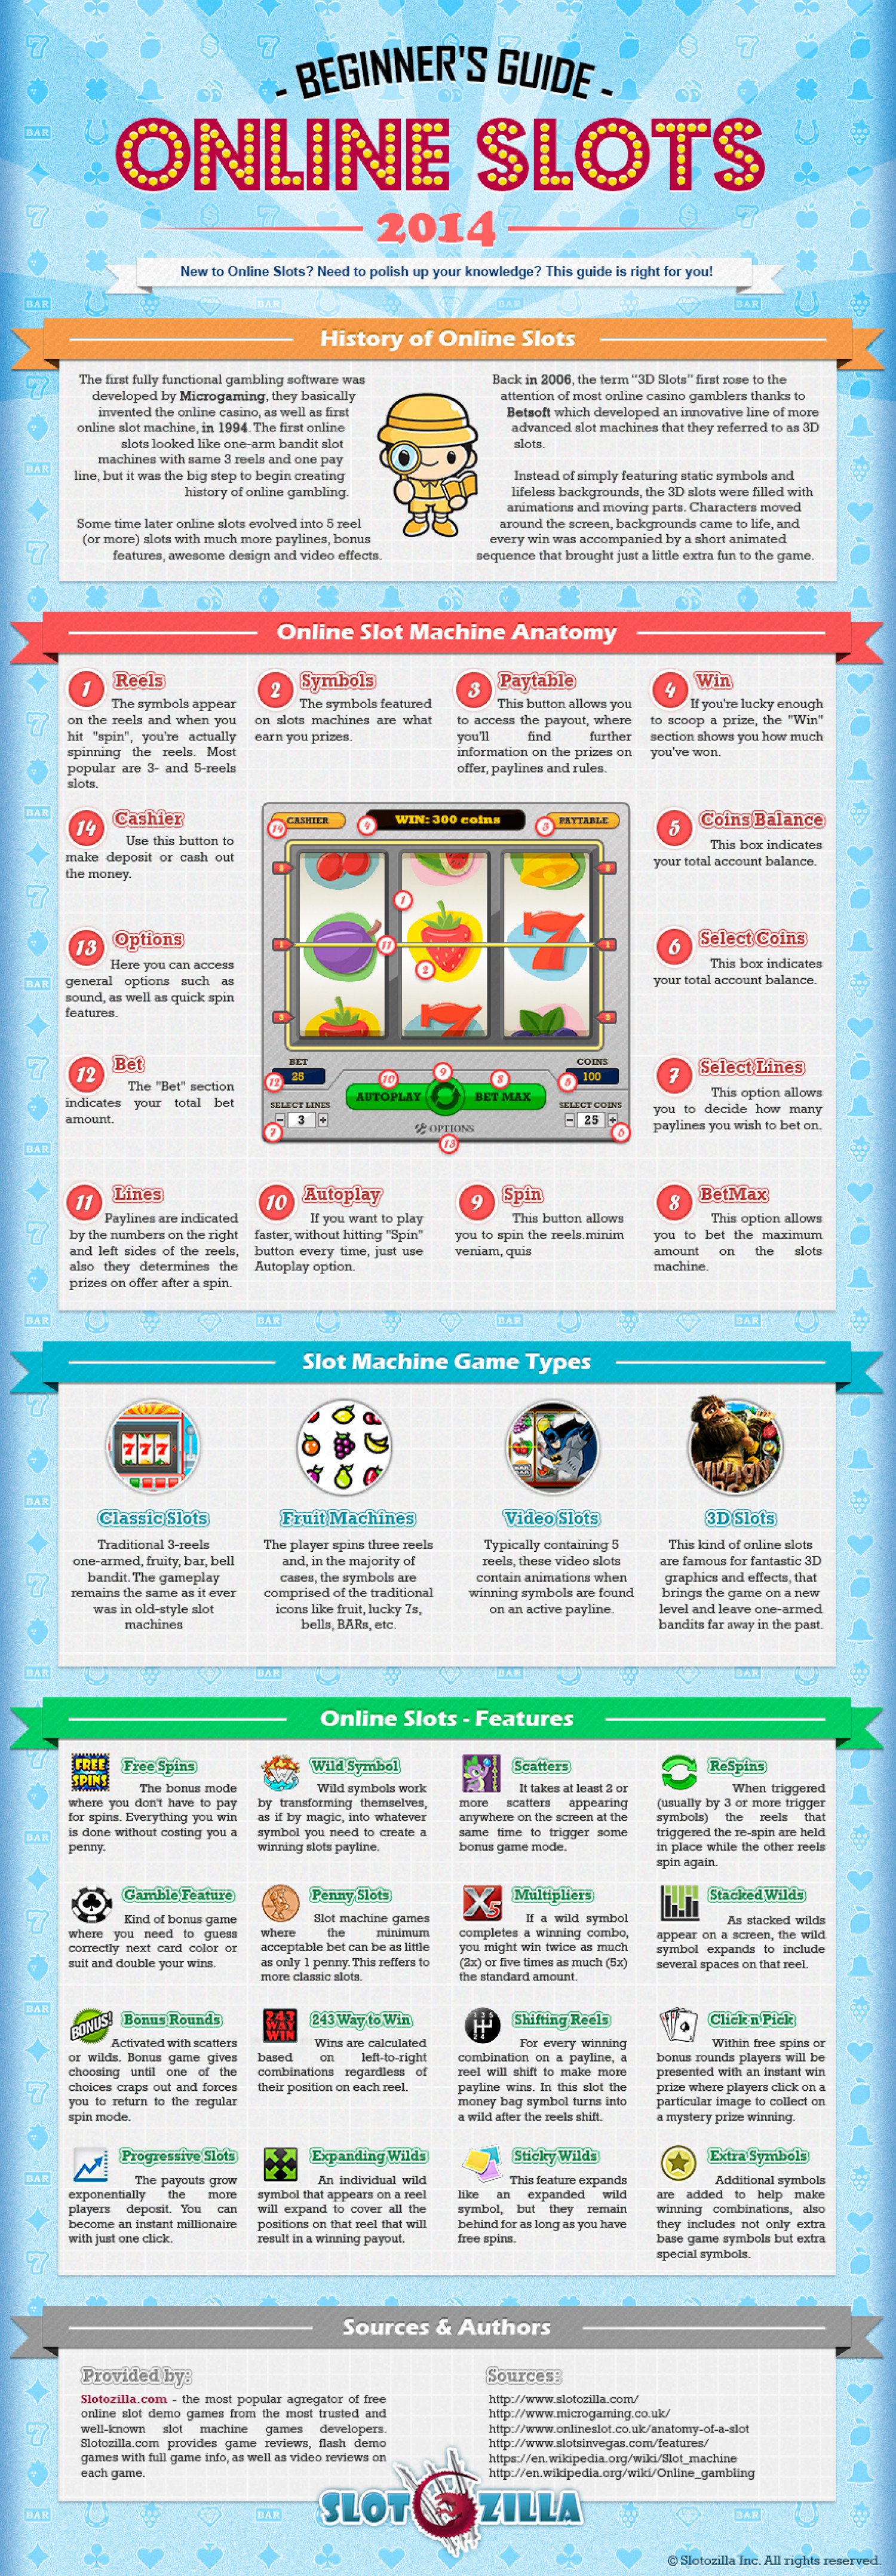 The Beginner's Guide to Online Slots Infographic